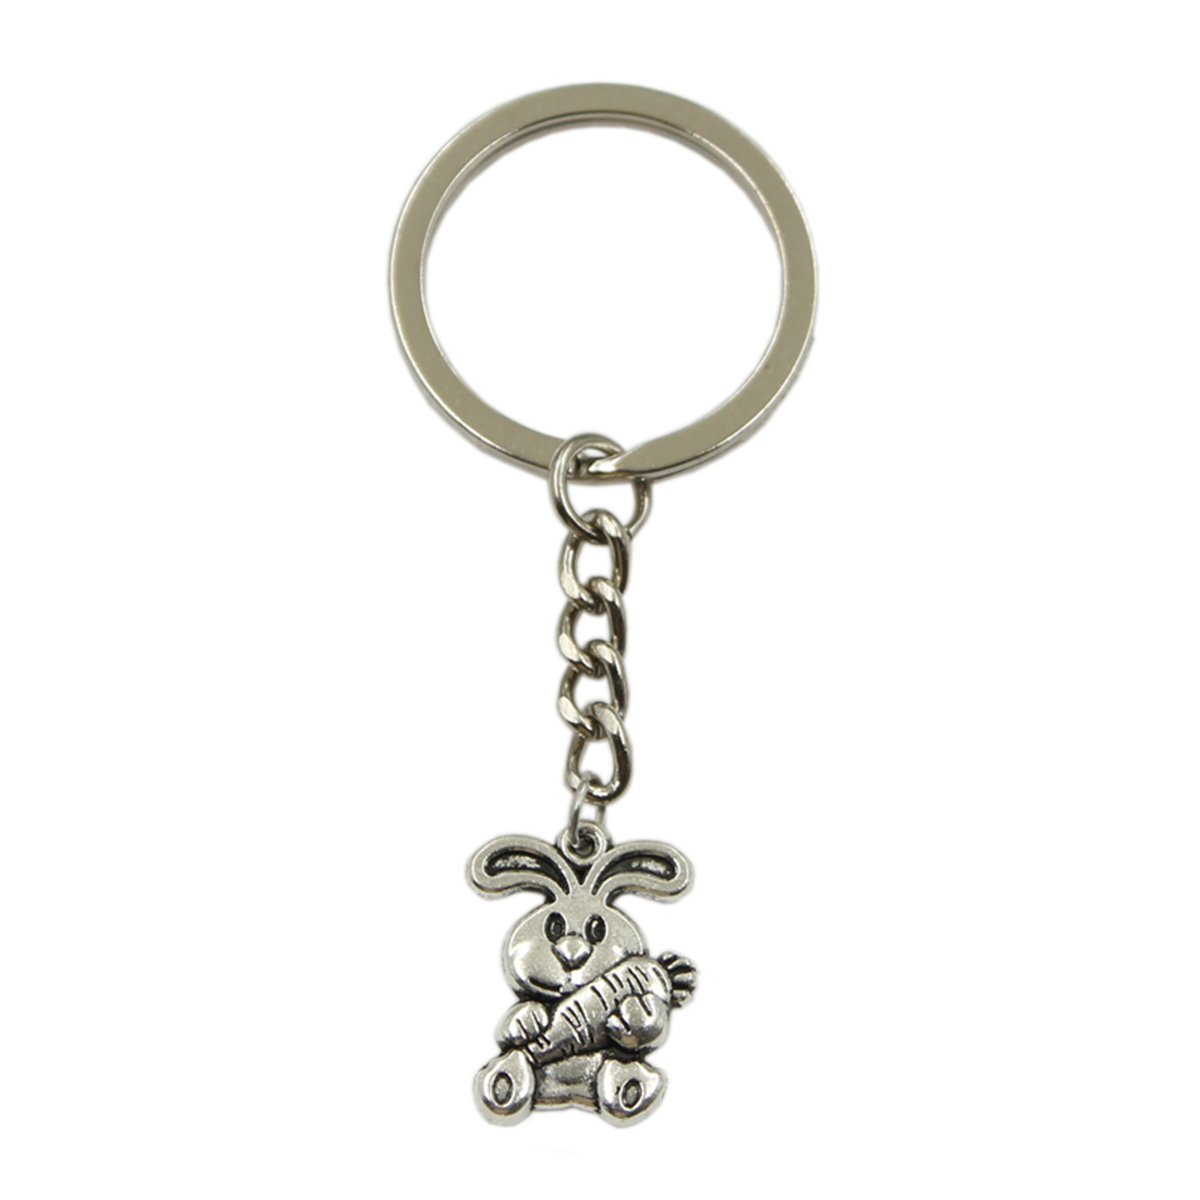 Factory Price Rabbit Bunny Carrot Easter Pendant Key Ring Metal Chain Silver Color Men Car Gift Souvenirs Keychain Dropshipping